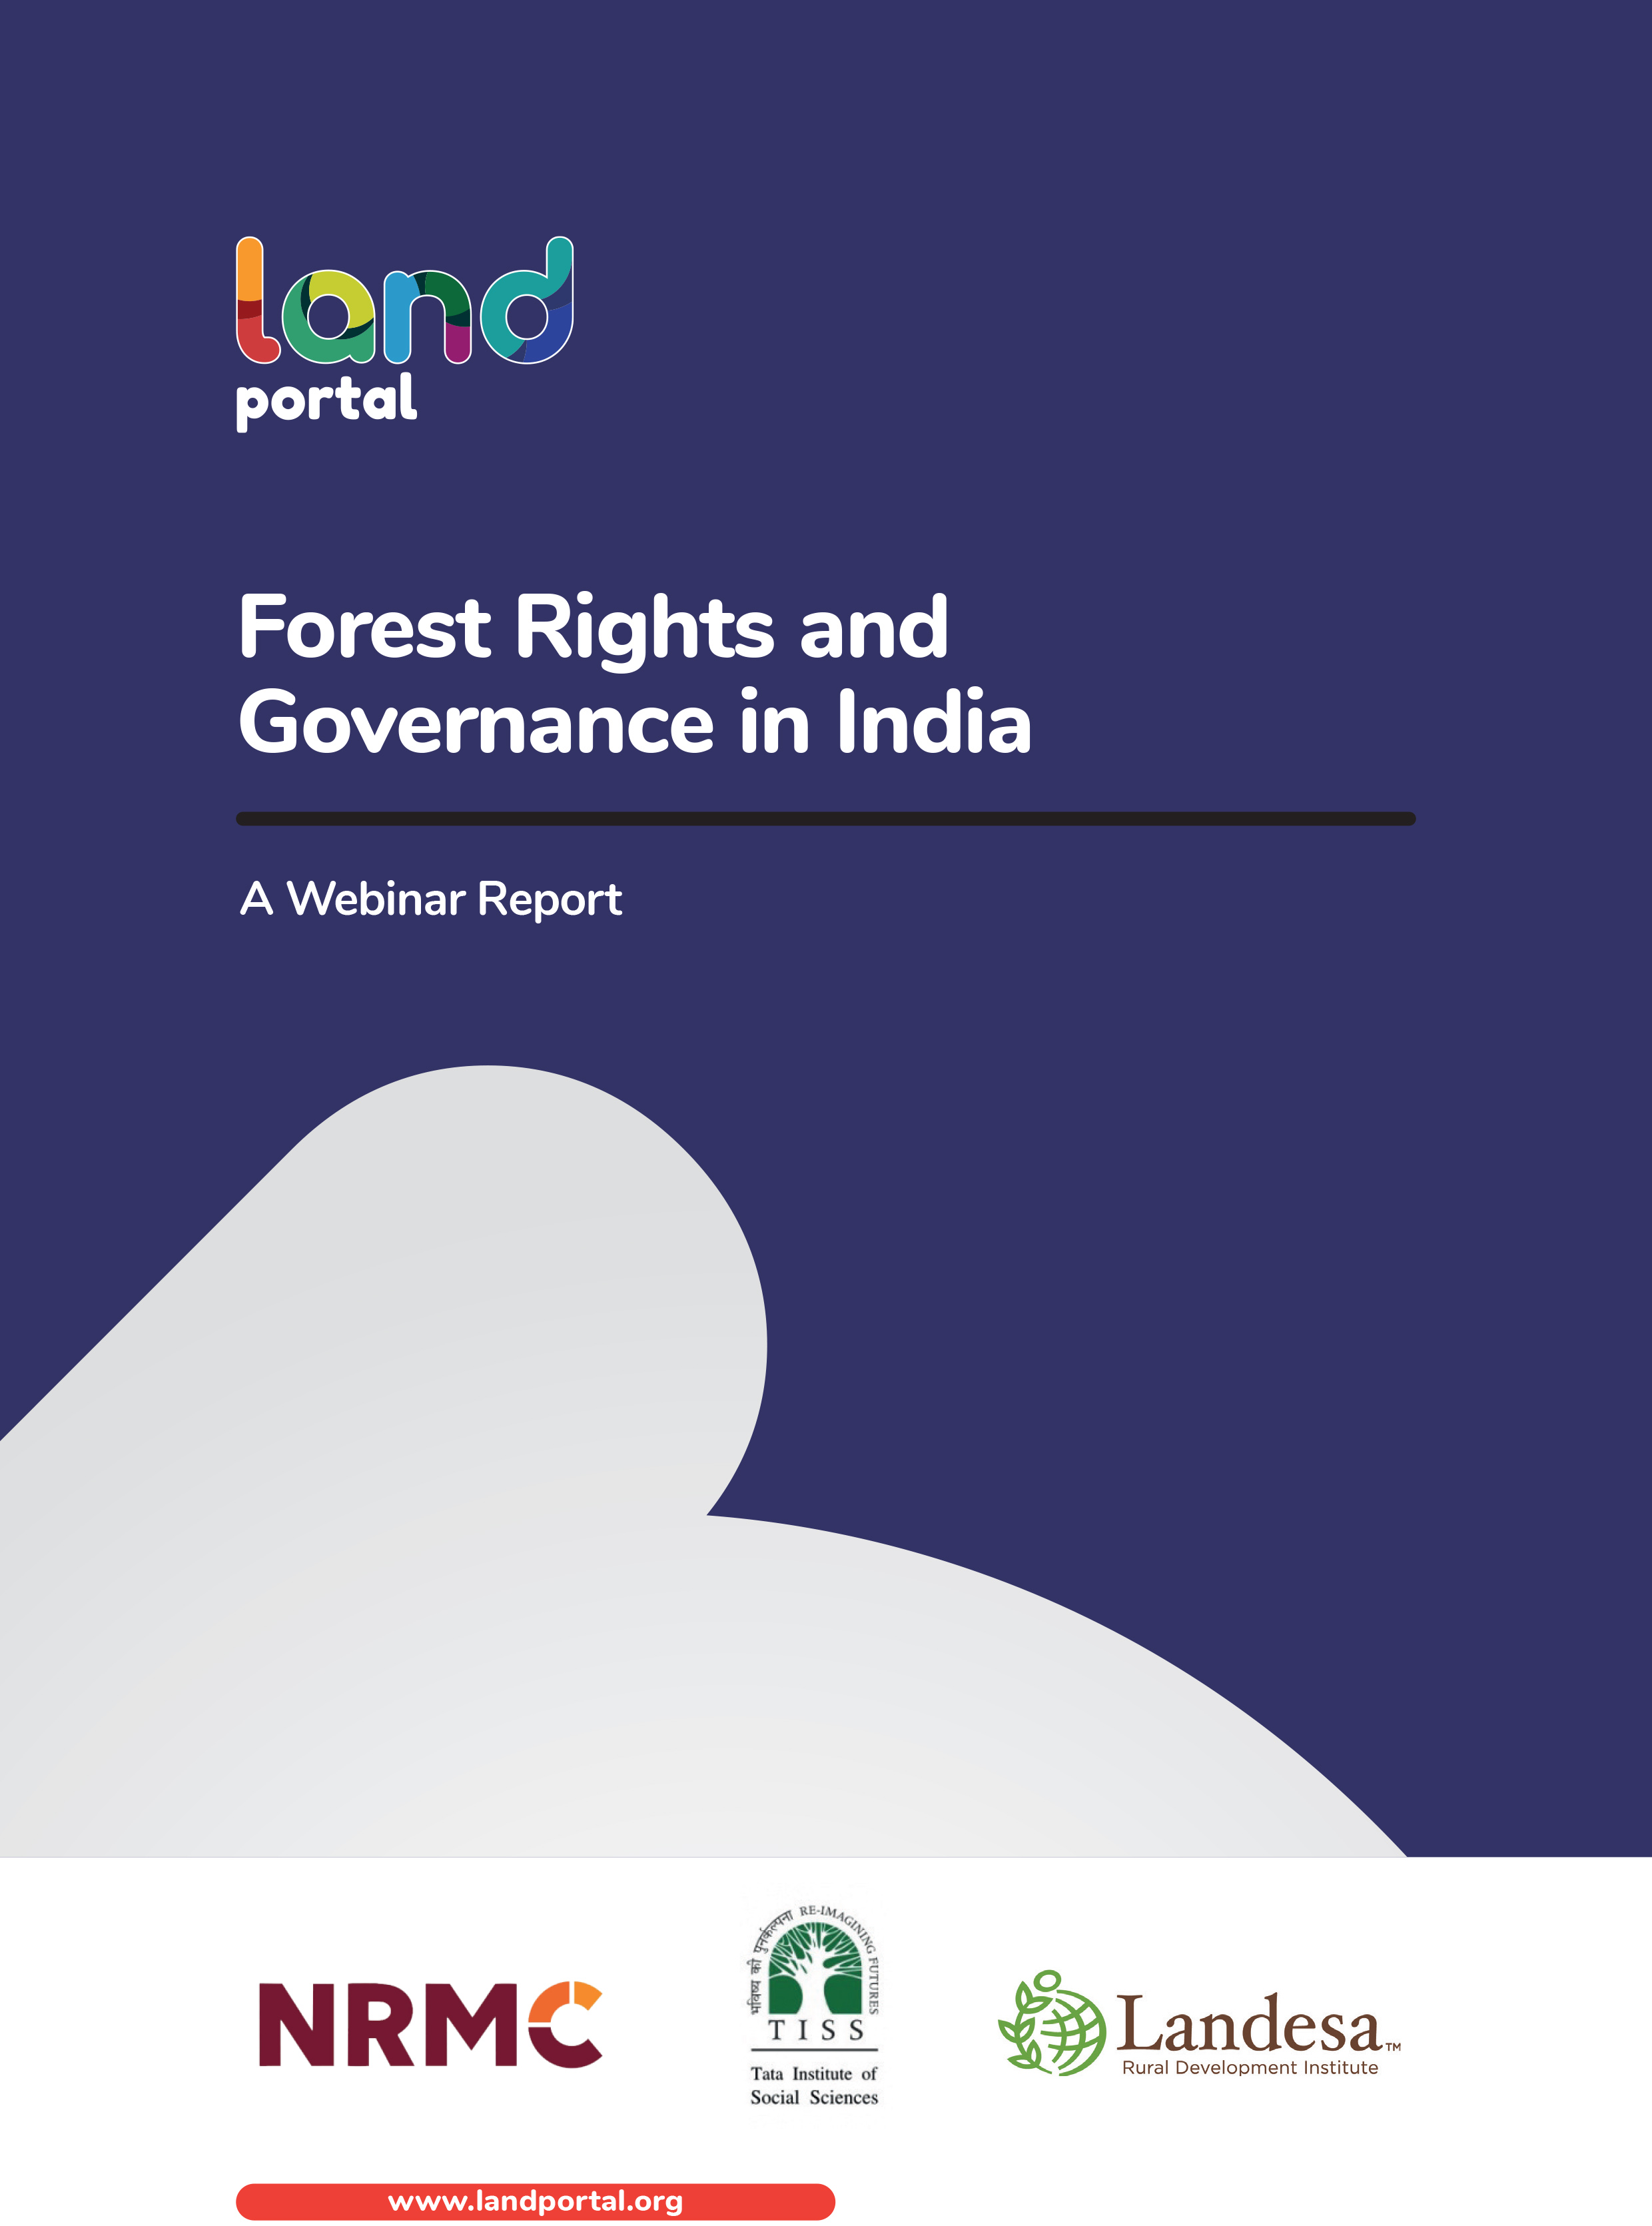 Forest Rights and Governance in India